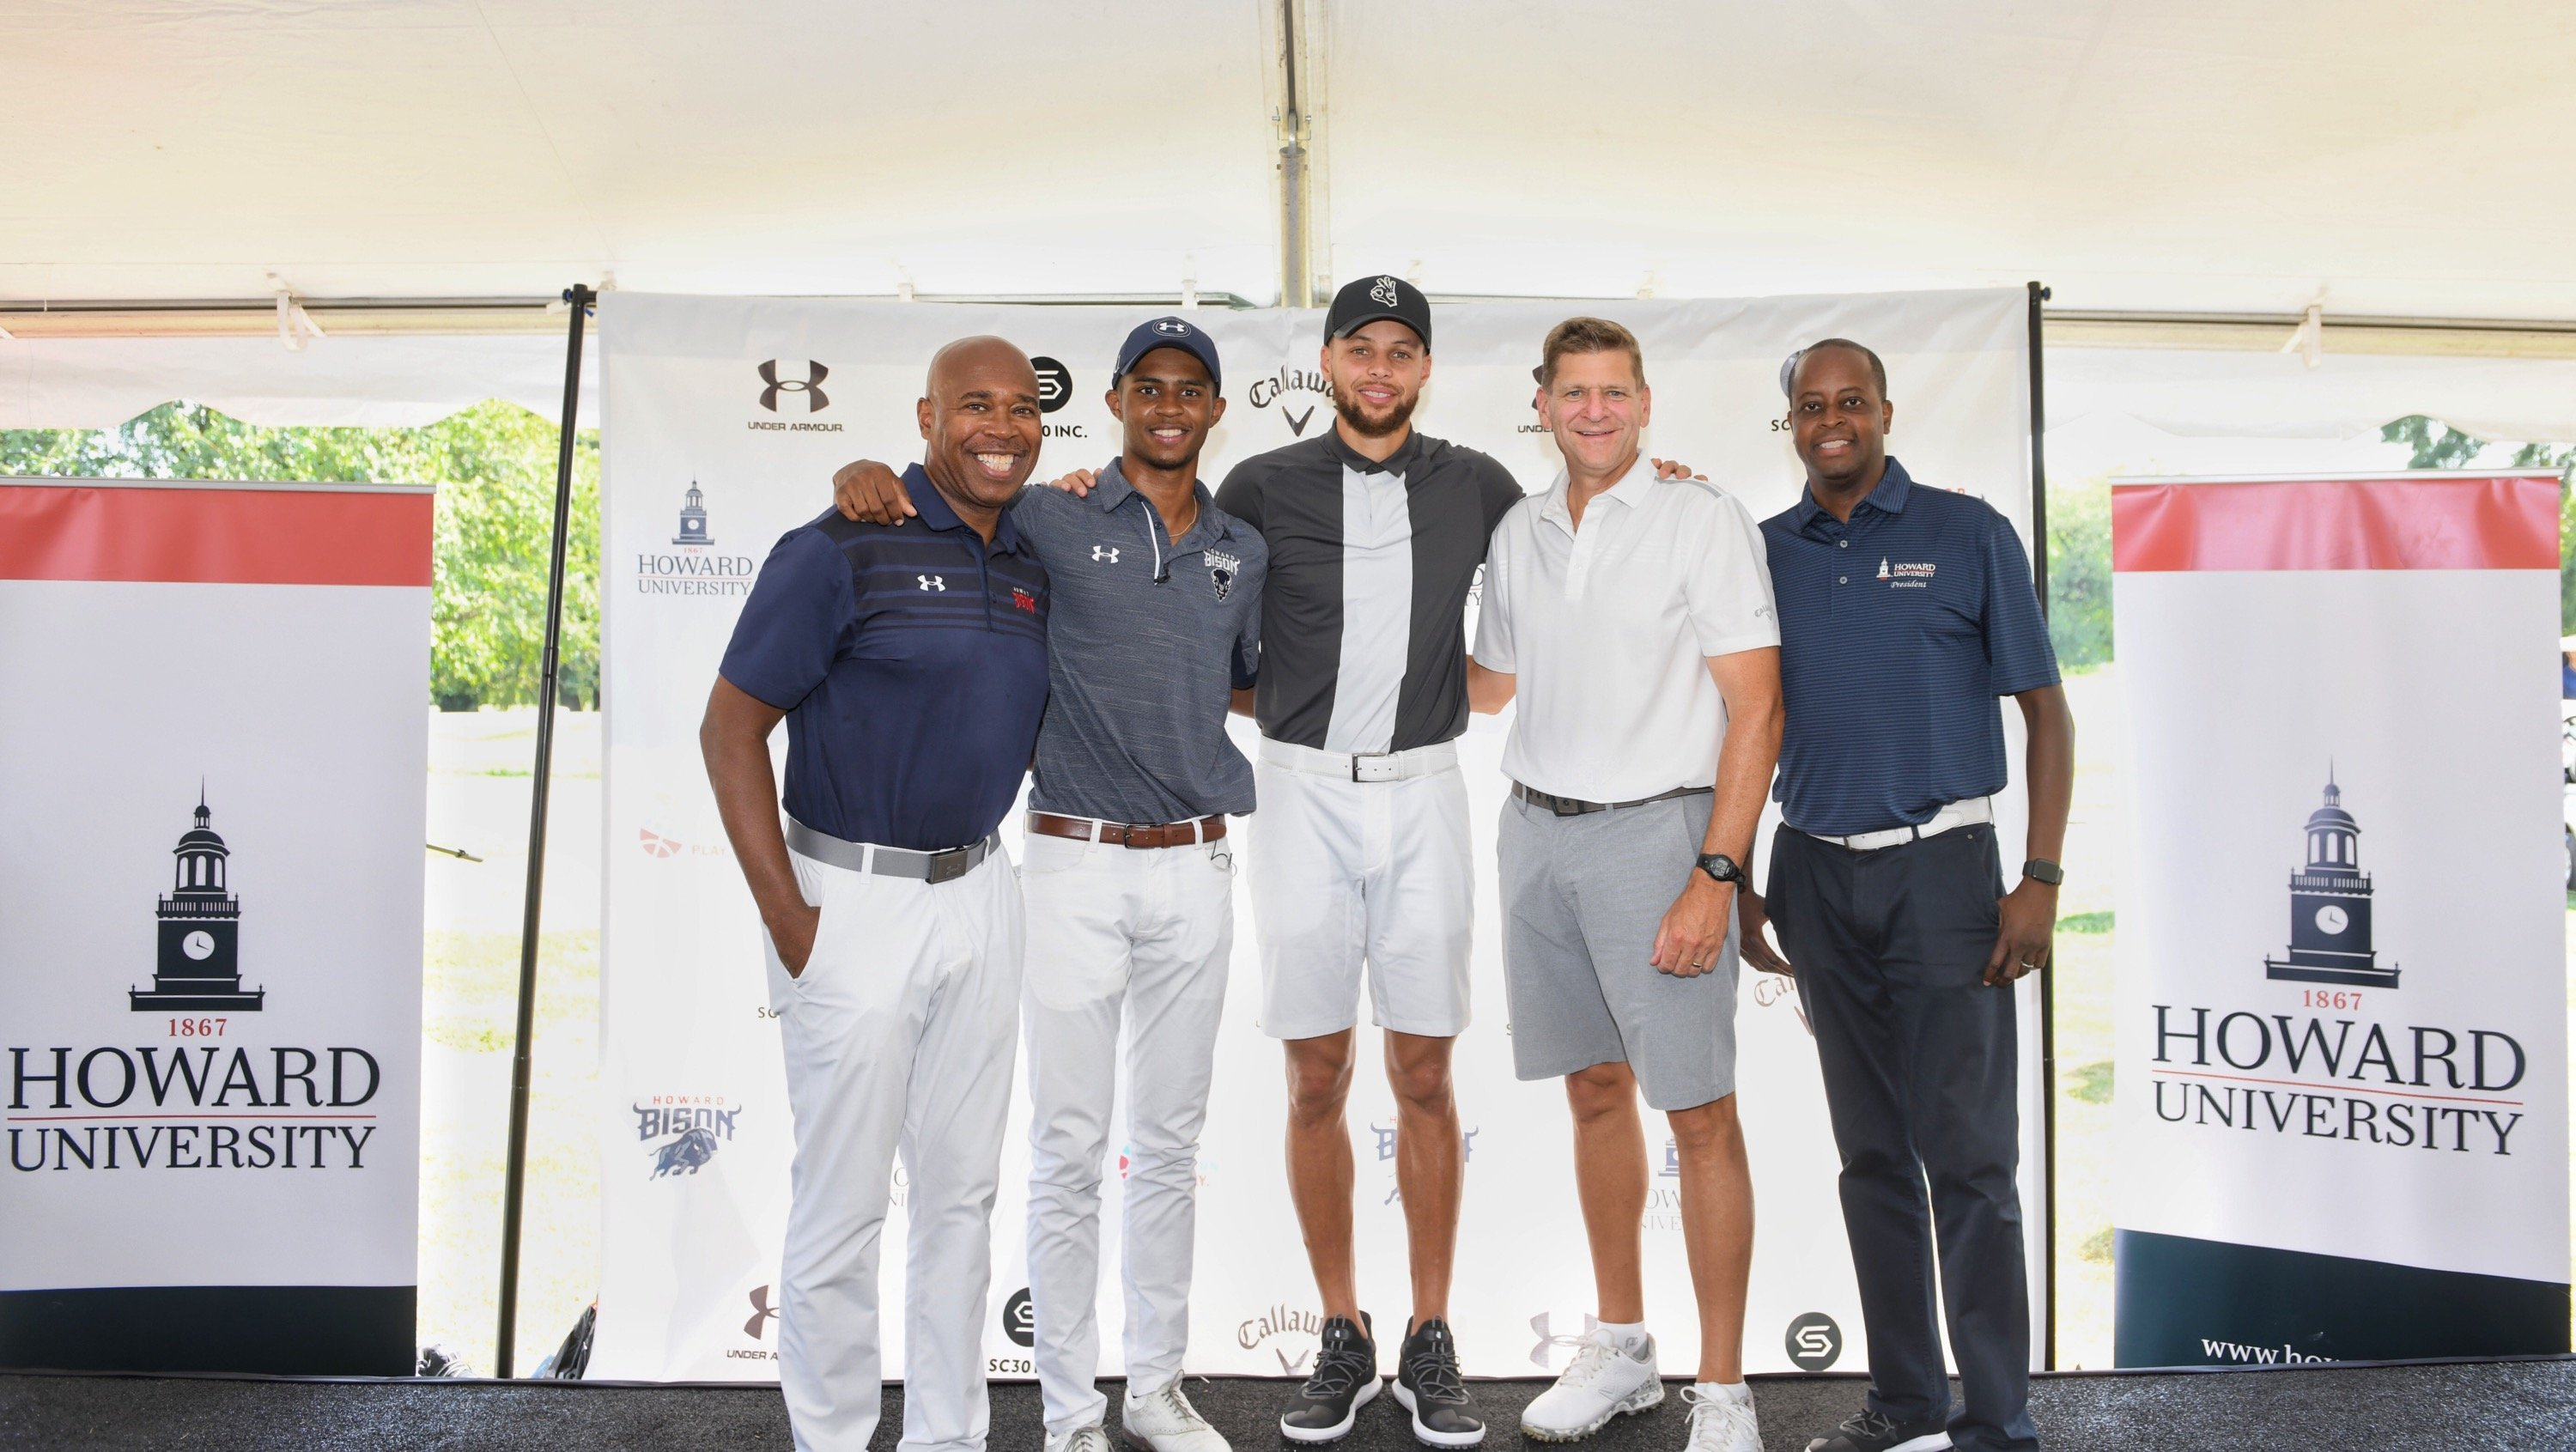 Steph Curry is helping launch Howard University's first Division I golf program